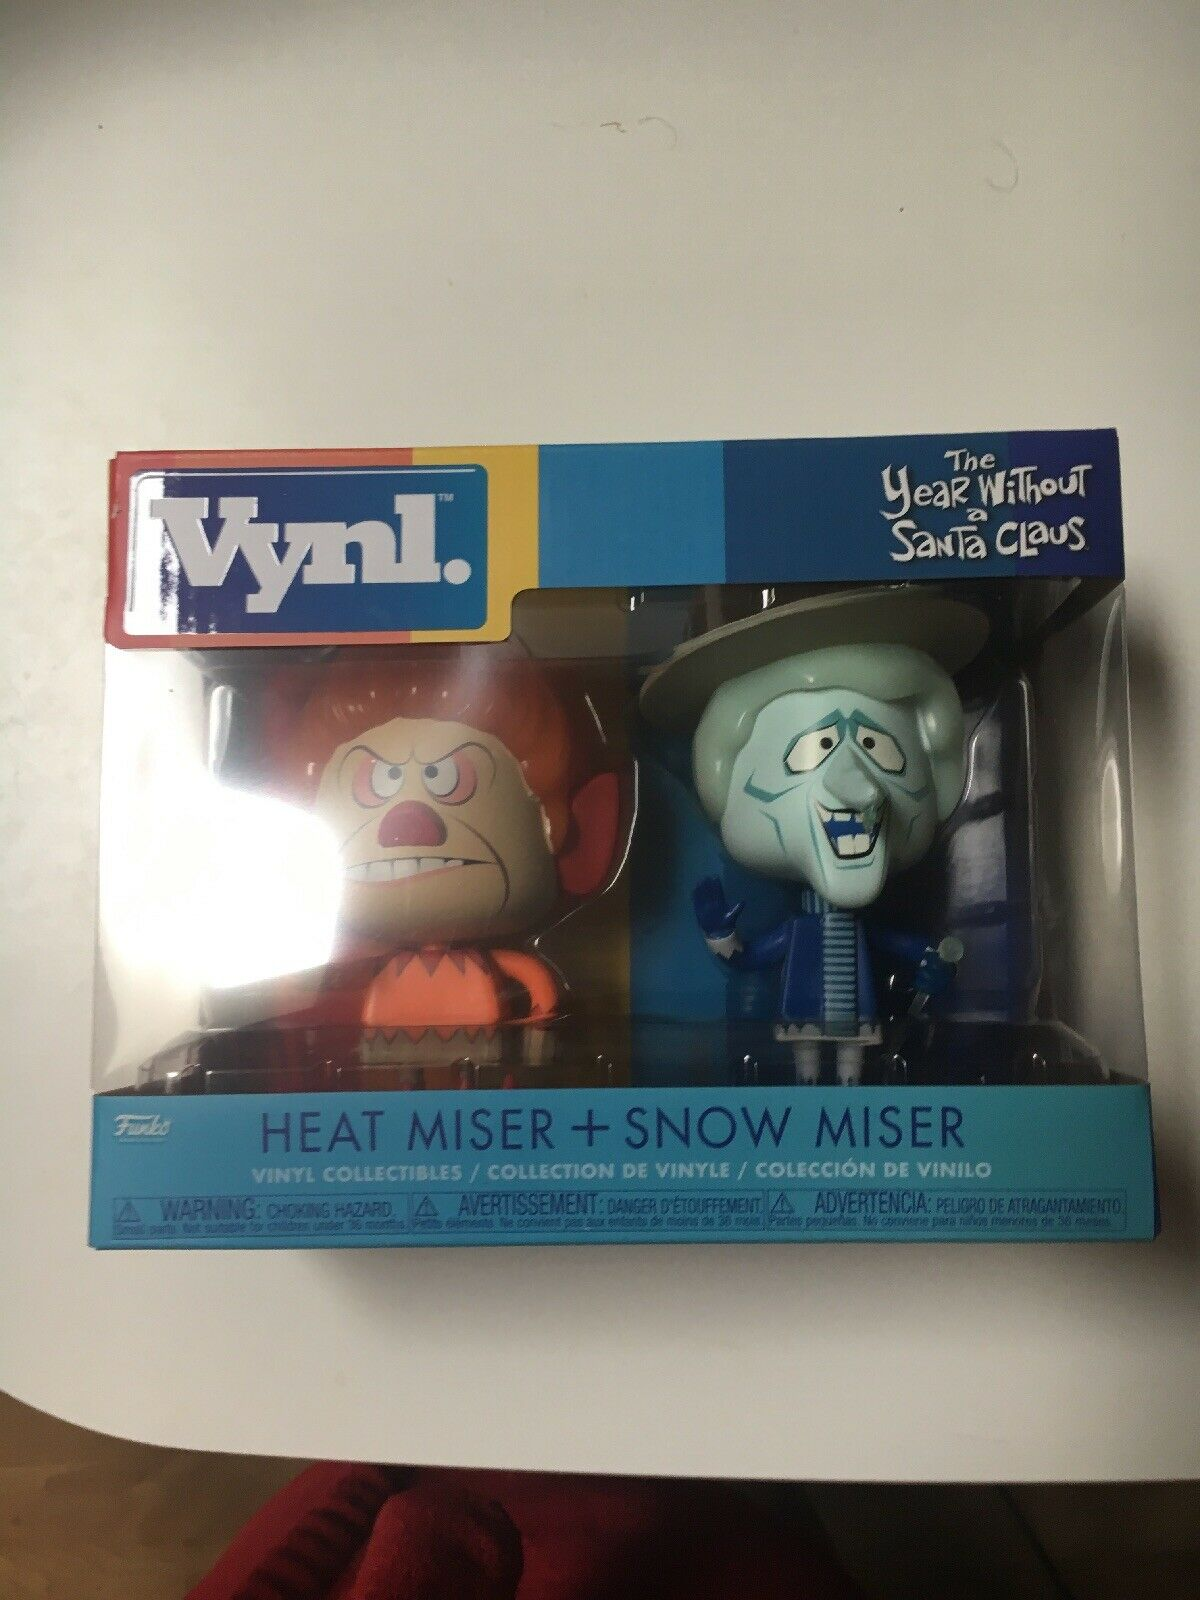 The Year Without A A A Santa Claus - Heat Miser & Snow Miser Vynl - FunKo RARE ded583